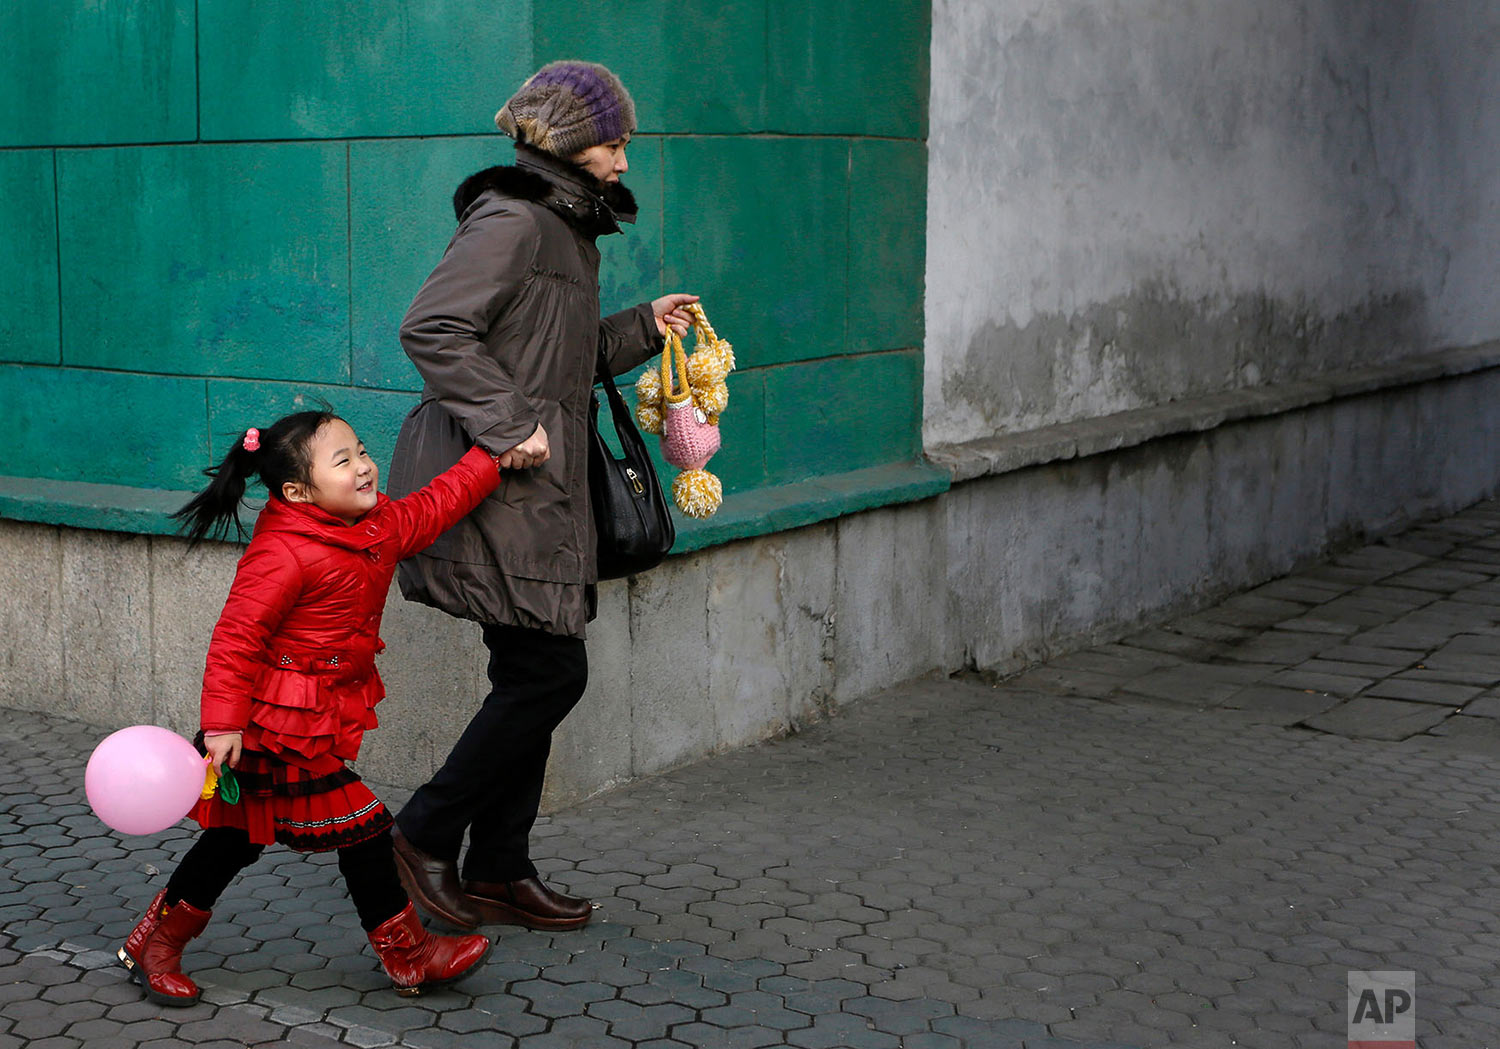 A girl walks with her mother on a downtown street in Pyongyang, North Korea, on Feb.18, 2014. (AP Photo/Vincent Yu)